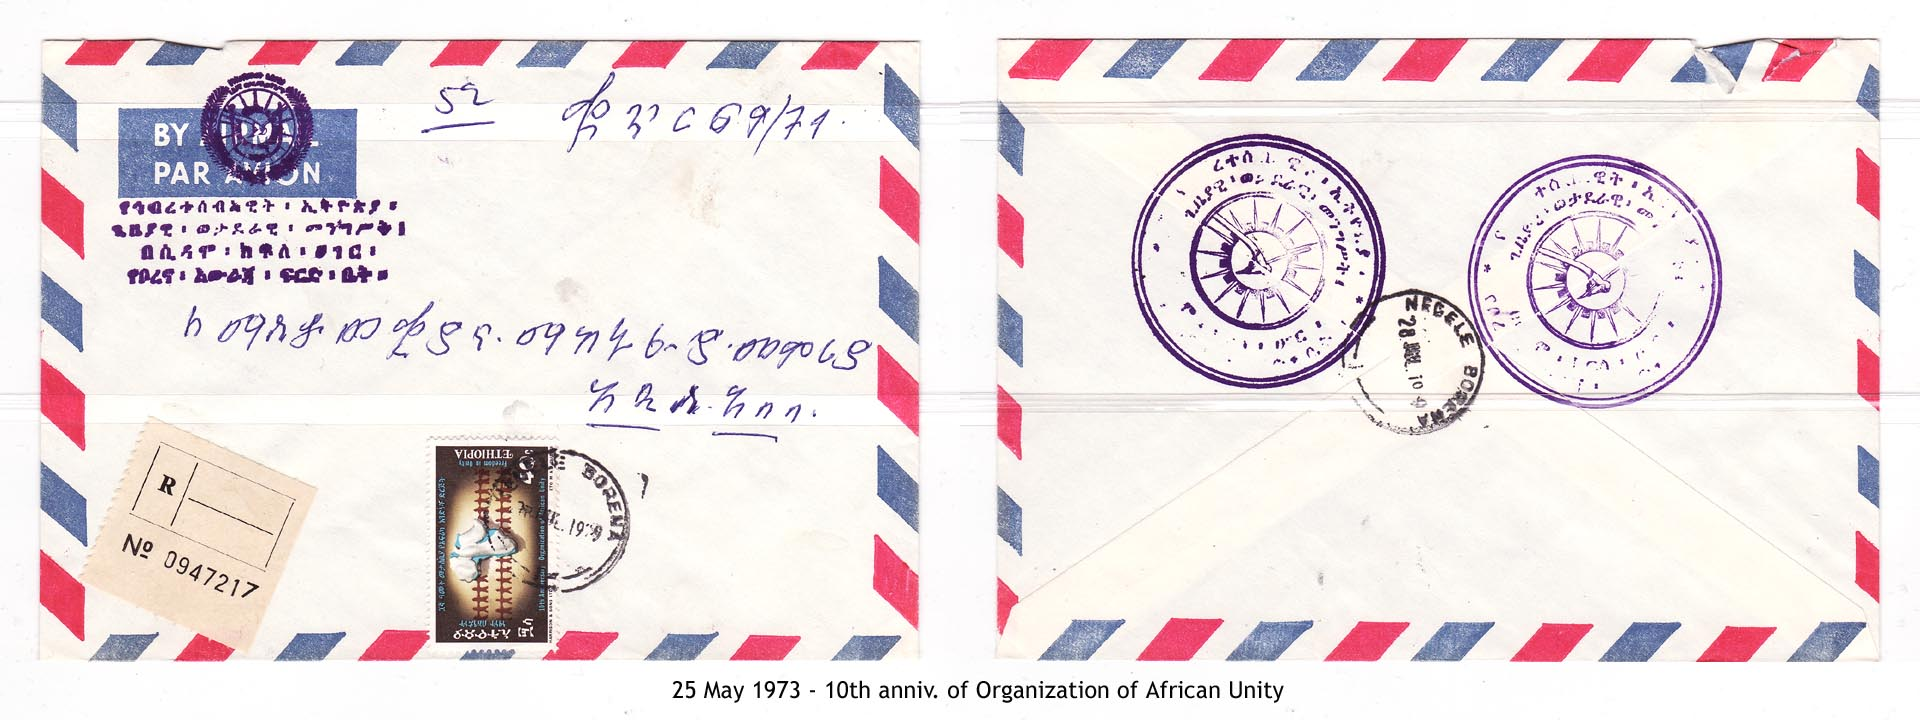 19730525 - 10th anniv. of Organization of African Unity